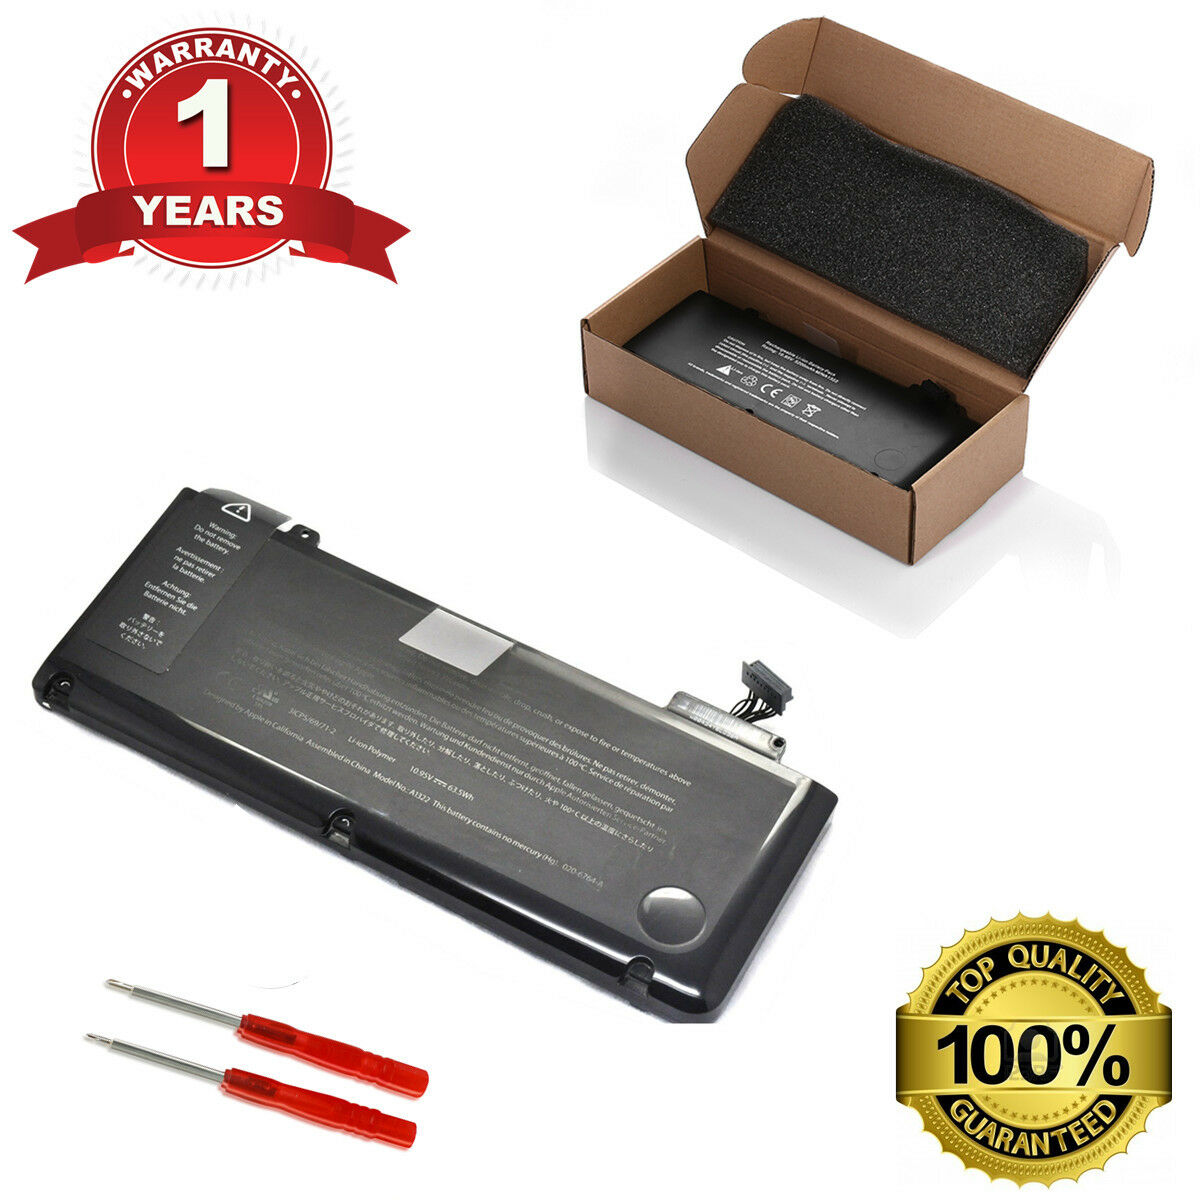 New Oem Genuine Battery For Macbook Pro 13 A1322 A1278 Mid 2009 Baterai Original Apple Inchi 2010 1 Of 12free Shipping